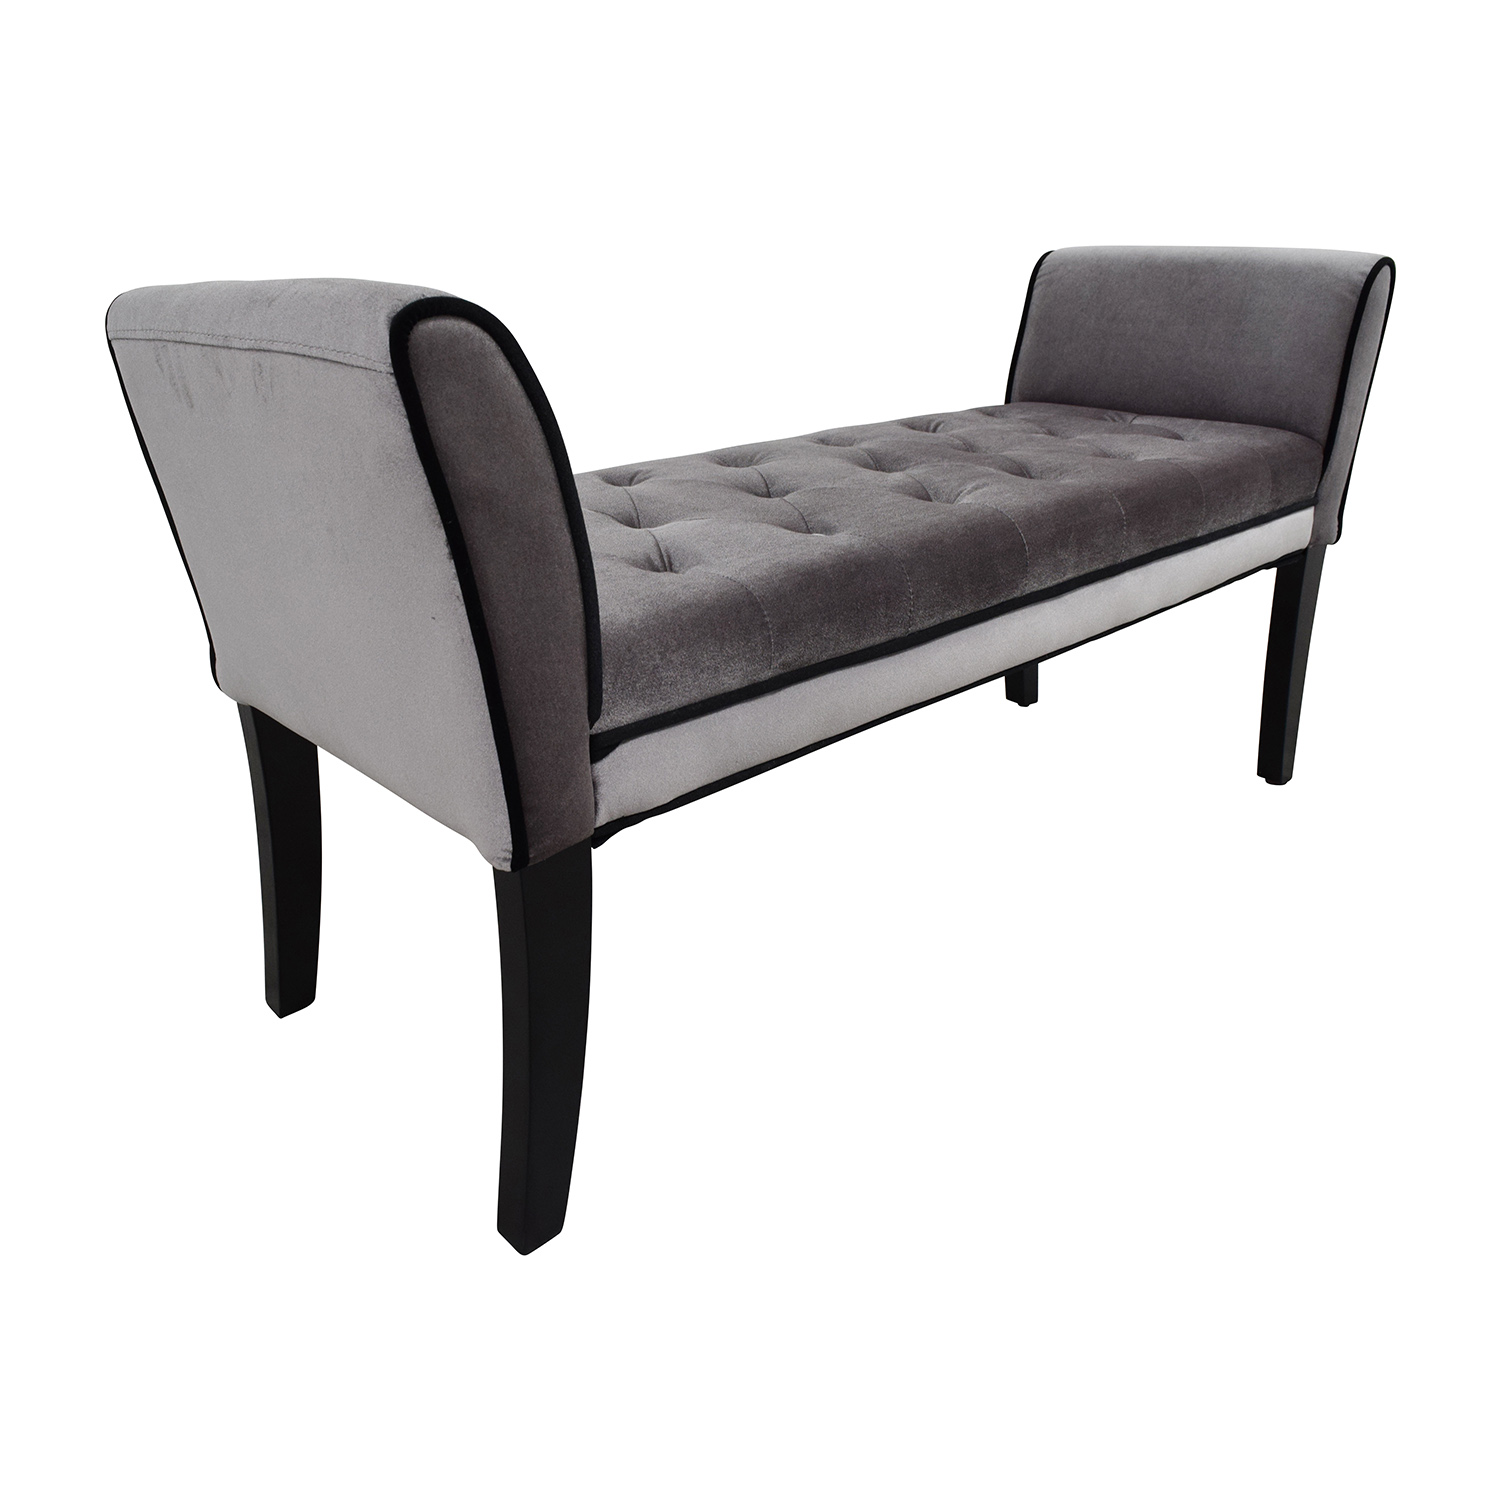 ... InMod InMod Grey Tufted Chatham Bench For Sale ...